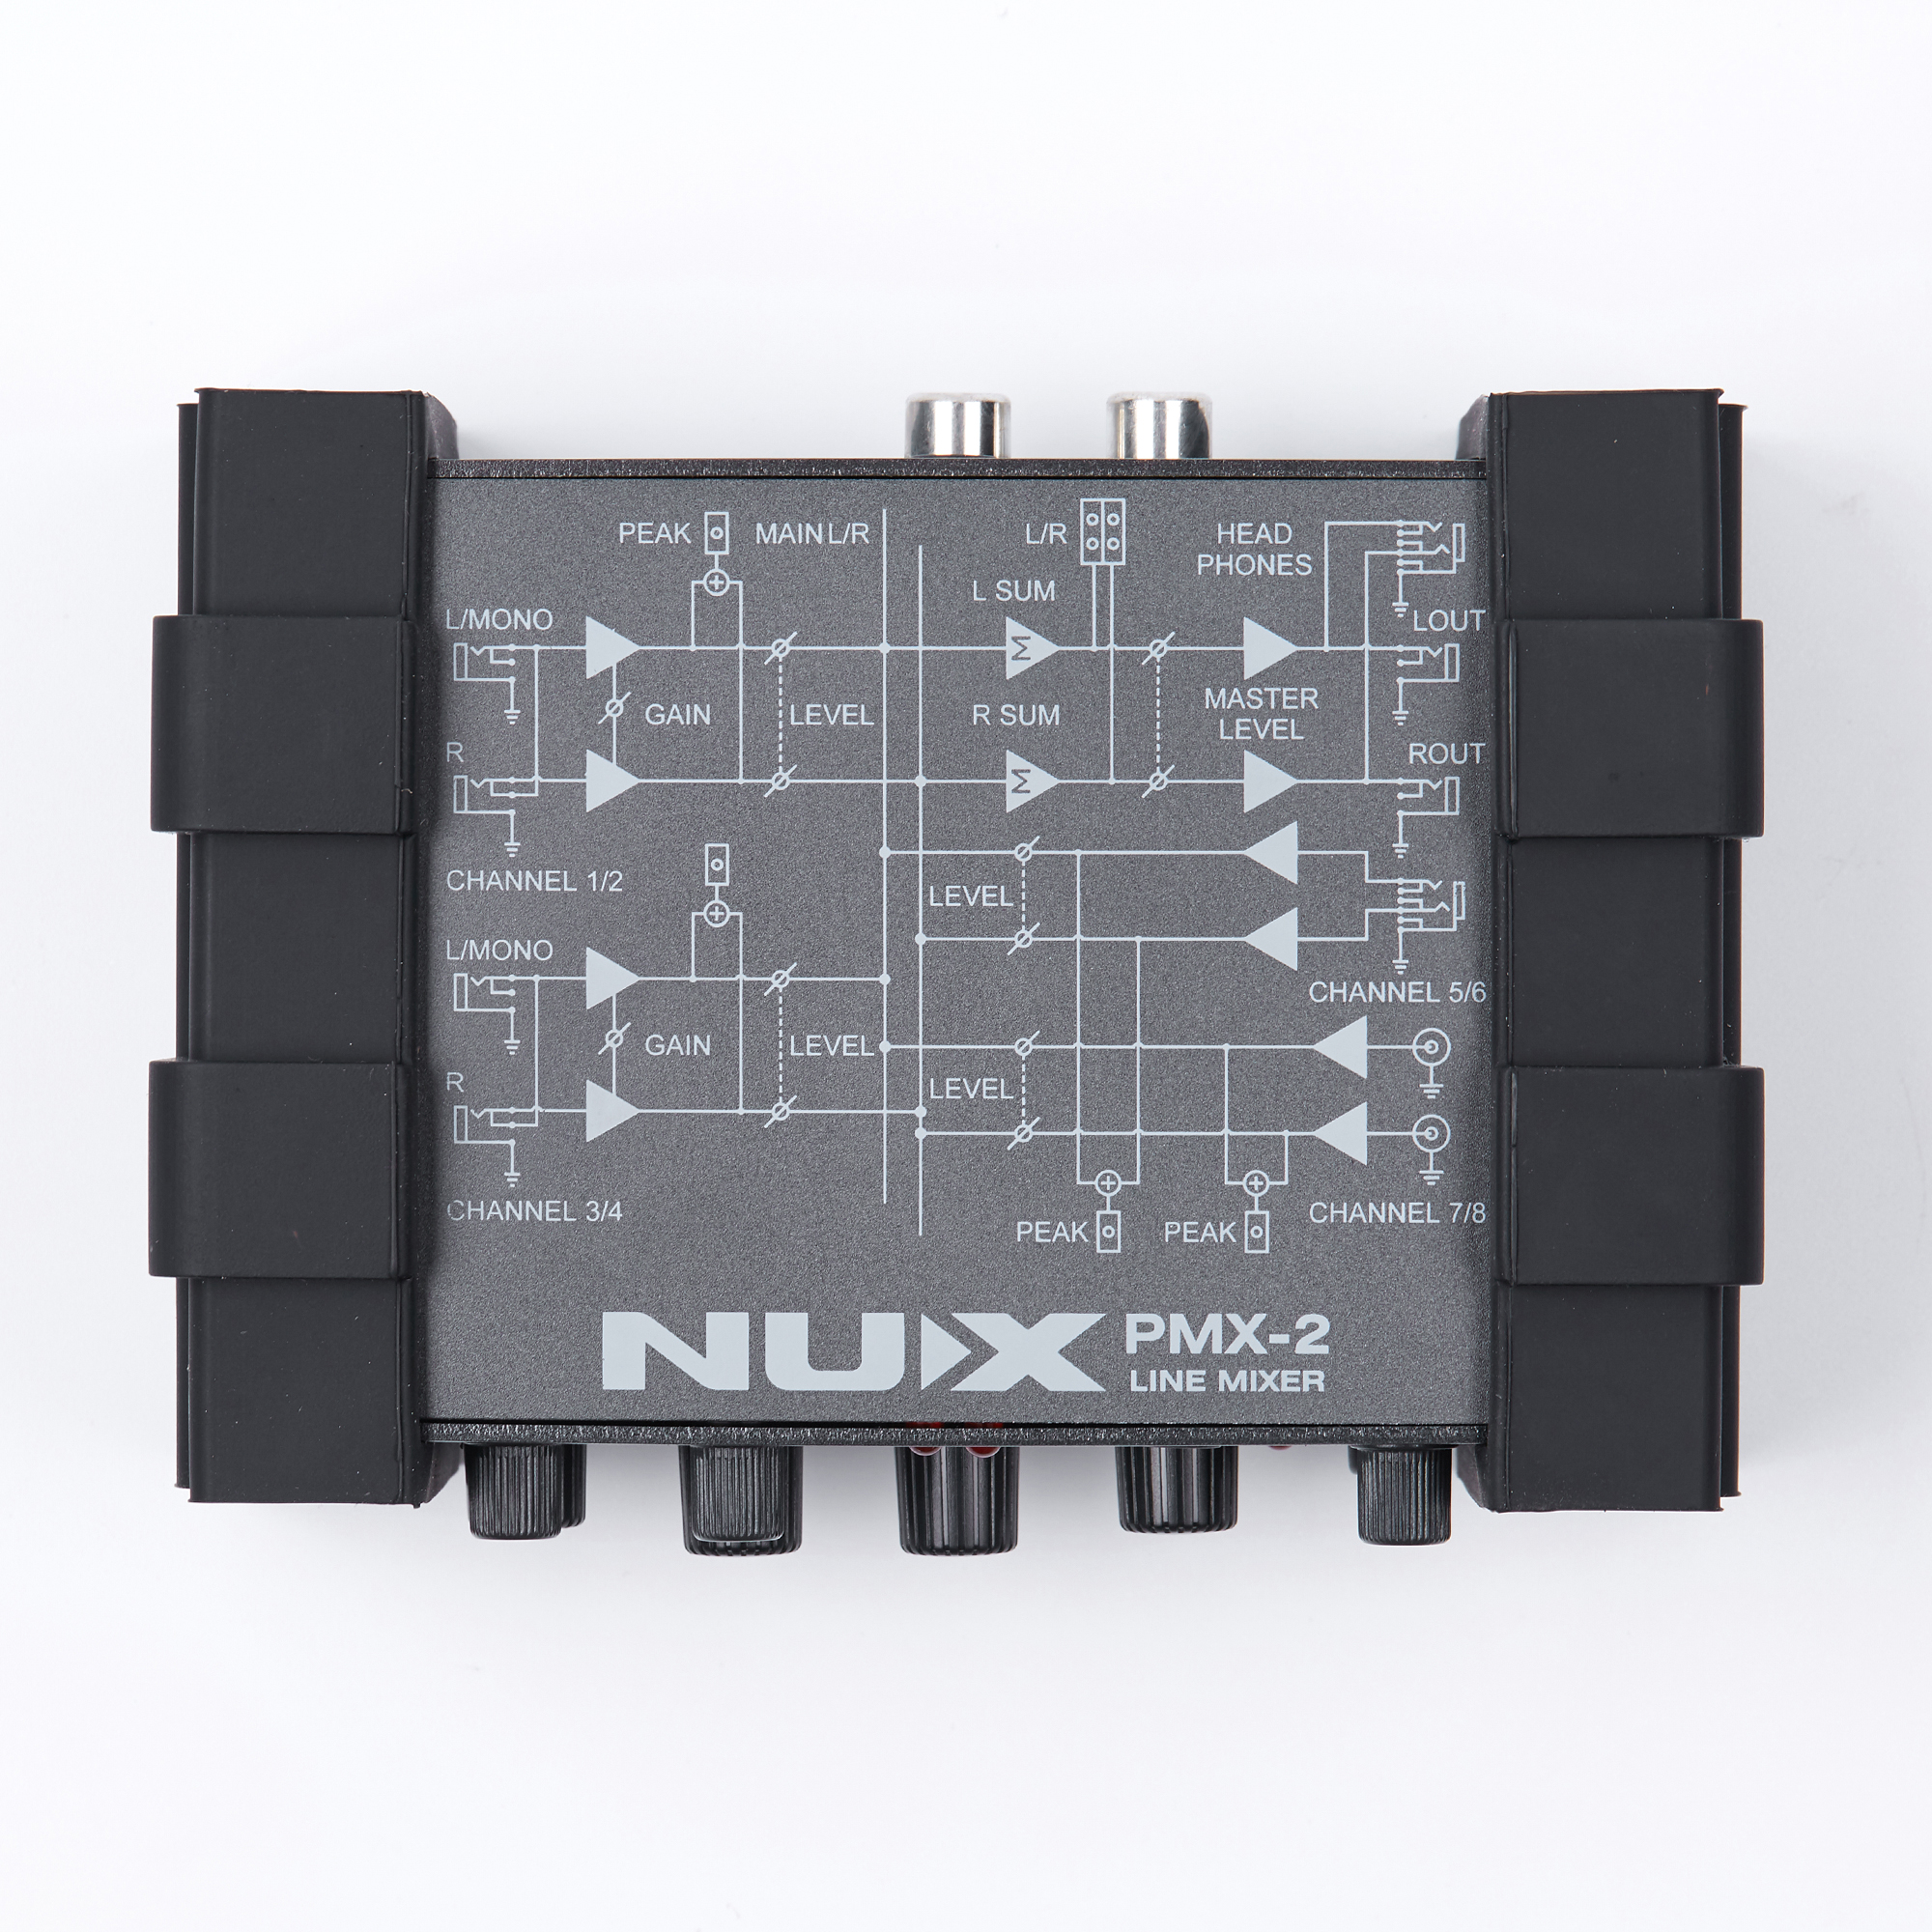 Gain Control 8 Inputs and 2 Outputs NUX PMX-2 Multi-Channel Mini Mixer 30 Musical Instruments Accessories for Guitar Bass Player hc 49s 49s 4 194304m 4 194304mhz 4 1943mhz